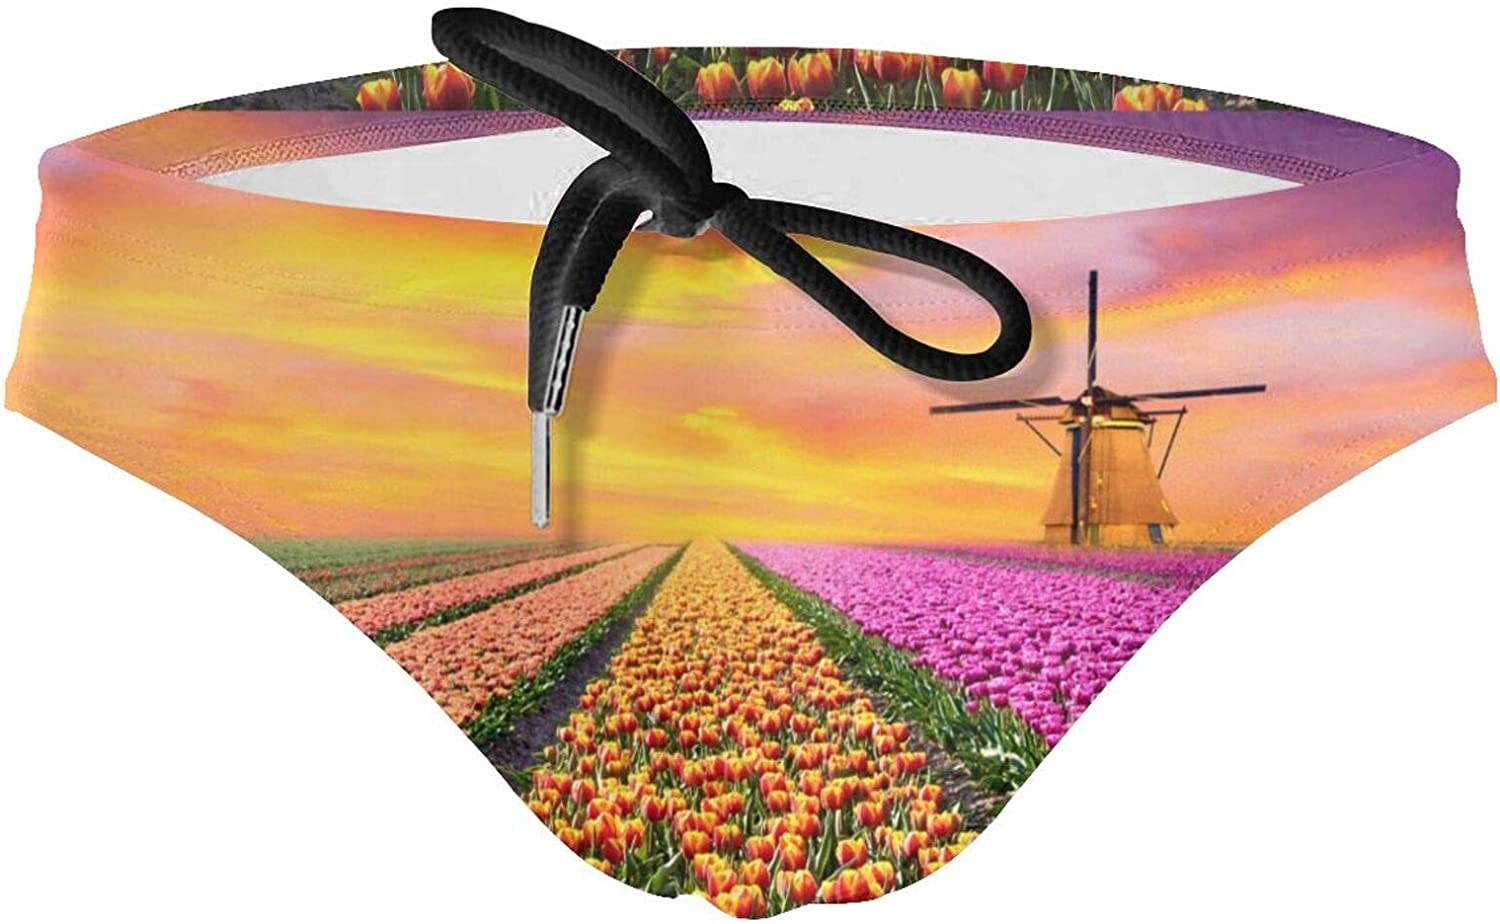 Sunrise Over Cash special price Tulip Fields New 25% OFF Comfor and Briefs Breathable Men's